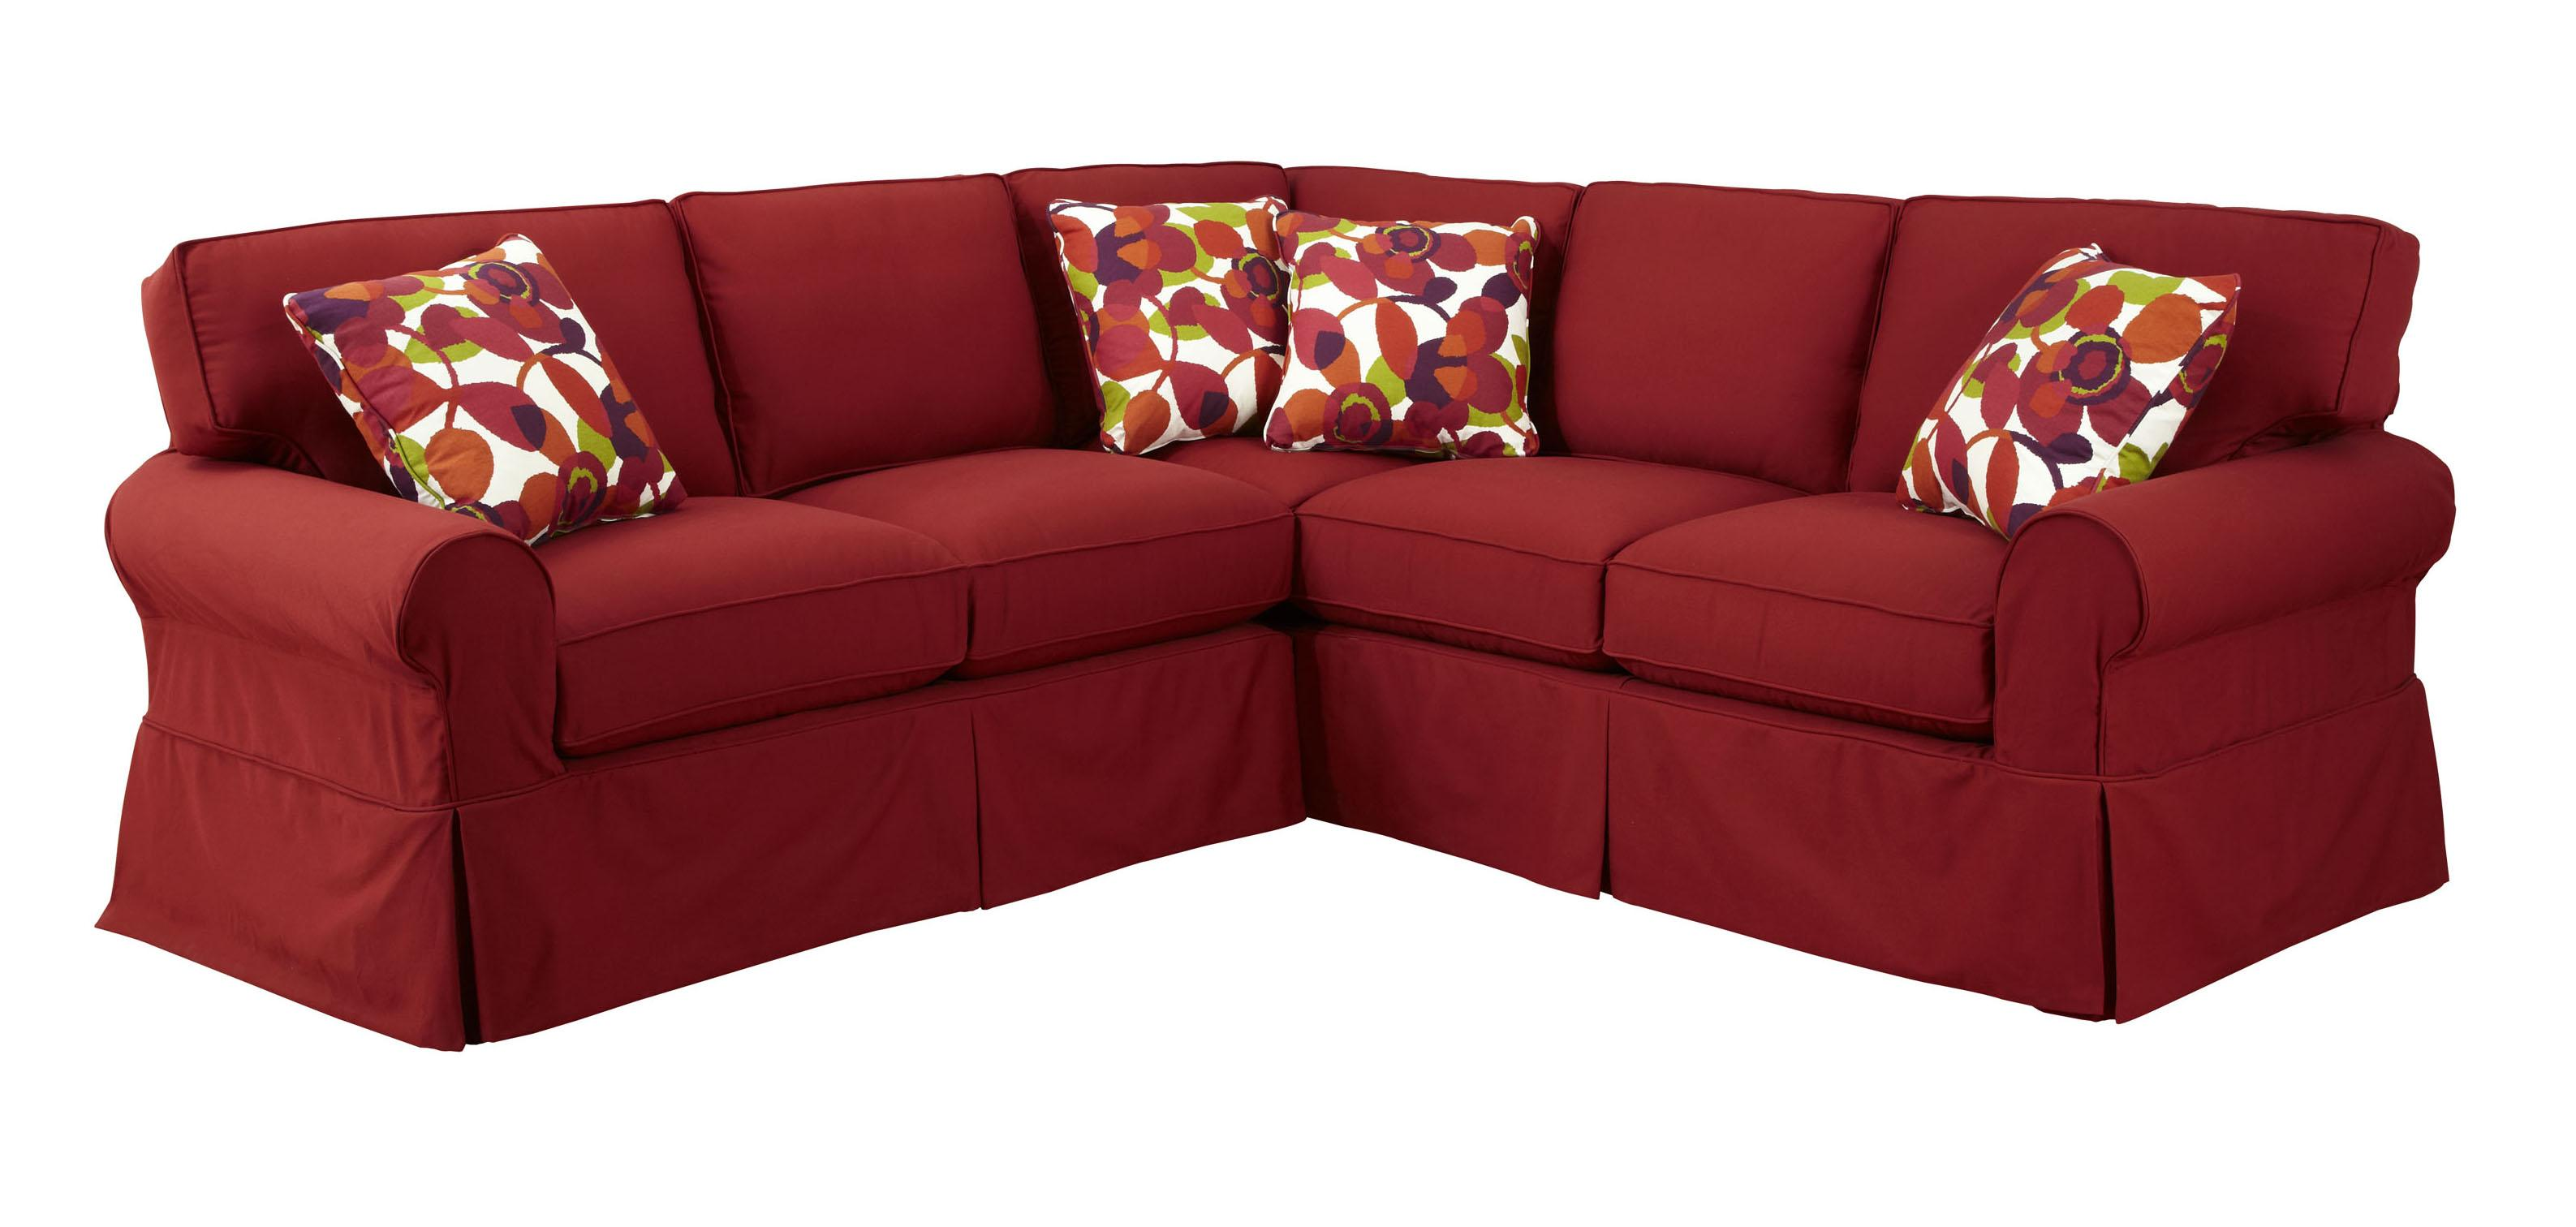 Craftmaster Two Piece Slipcovered Sectional Sofa with RAF